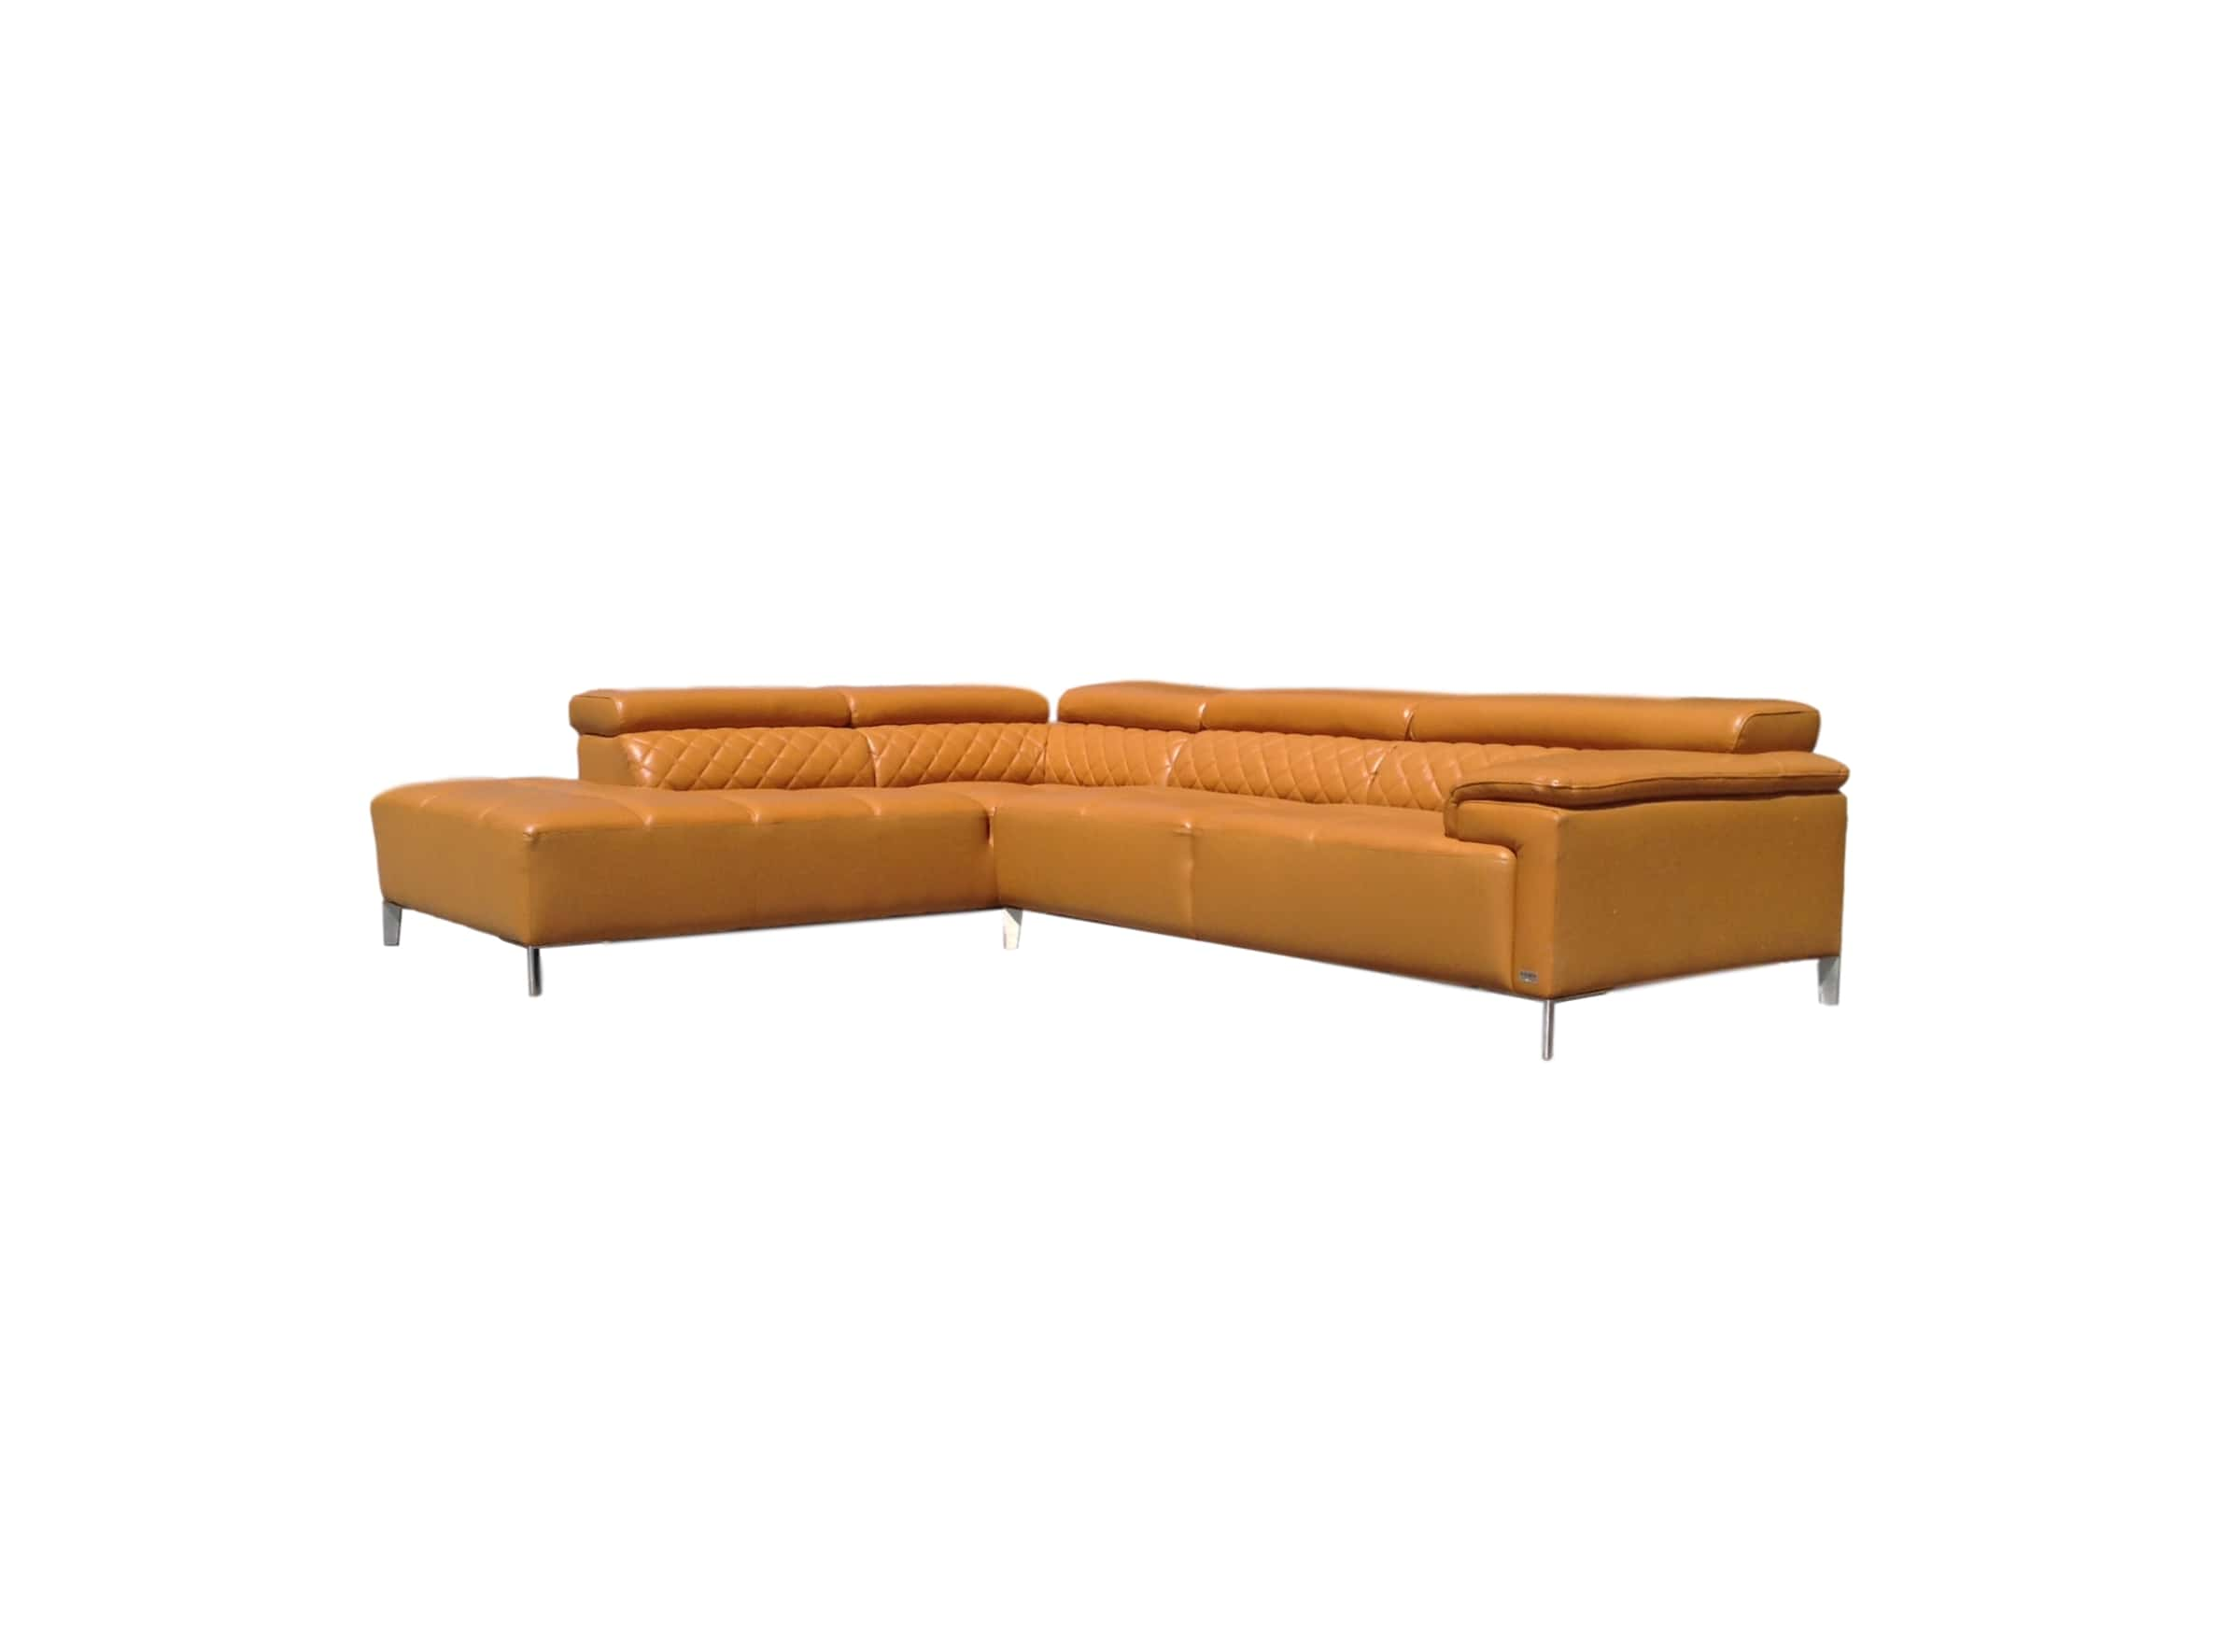 Remarkable Citadel Modern Orange Italian Leather Sectional Sofa Reduced Pdpeps Interior Chair Design Pdpepsorg